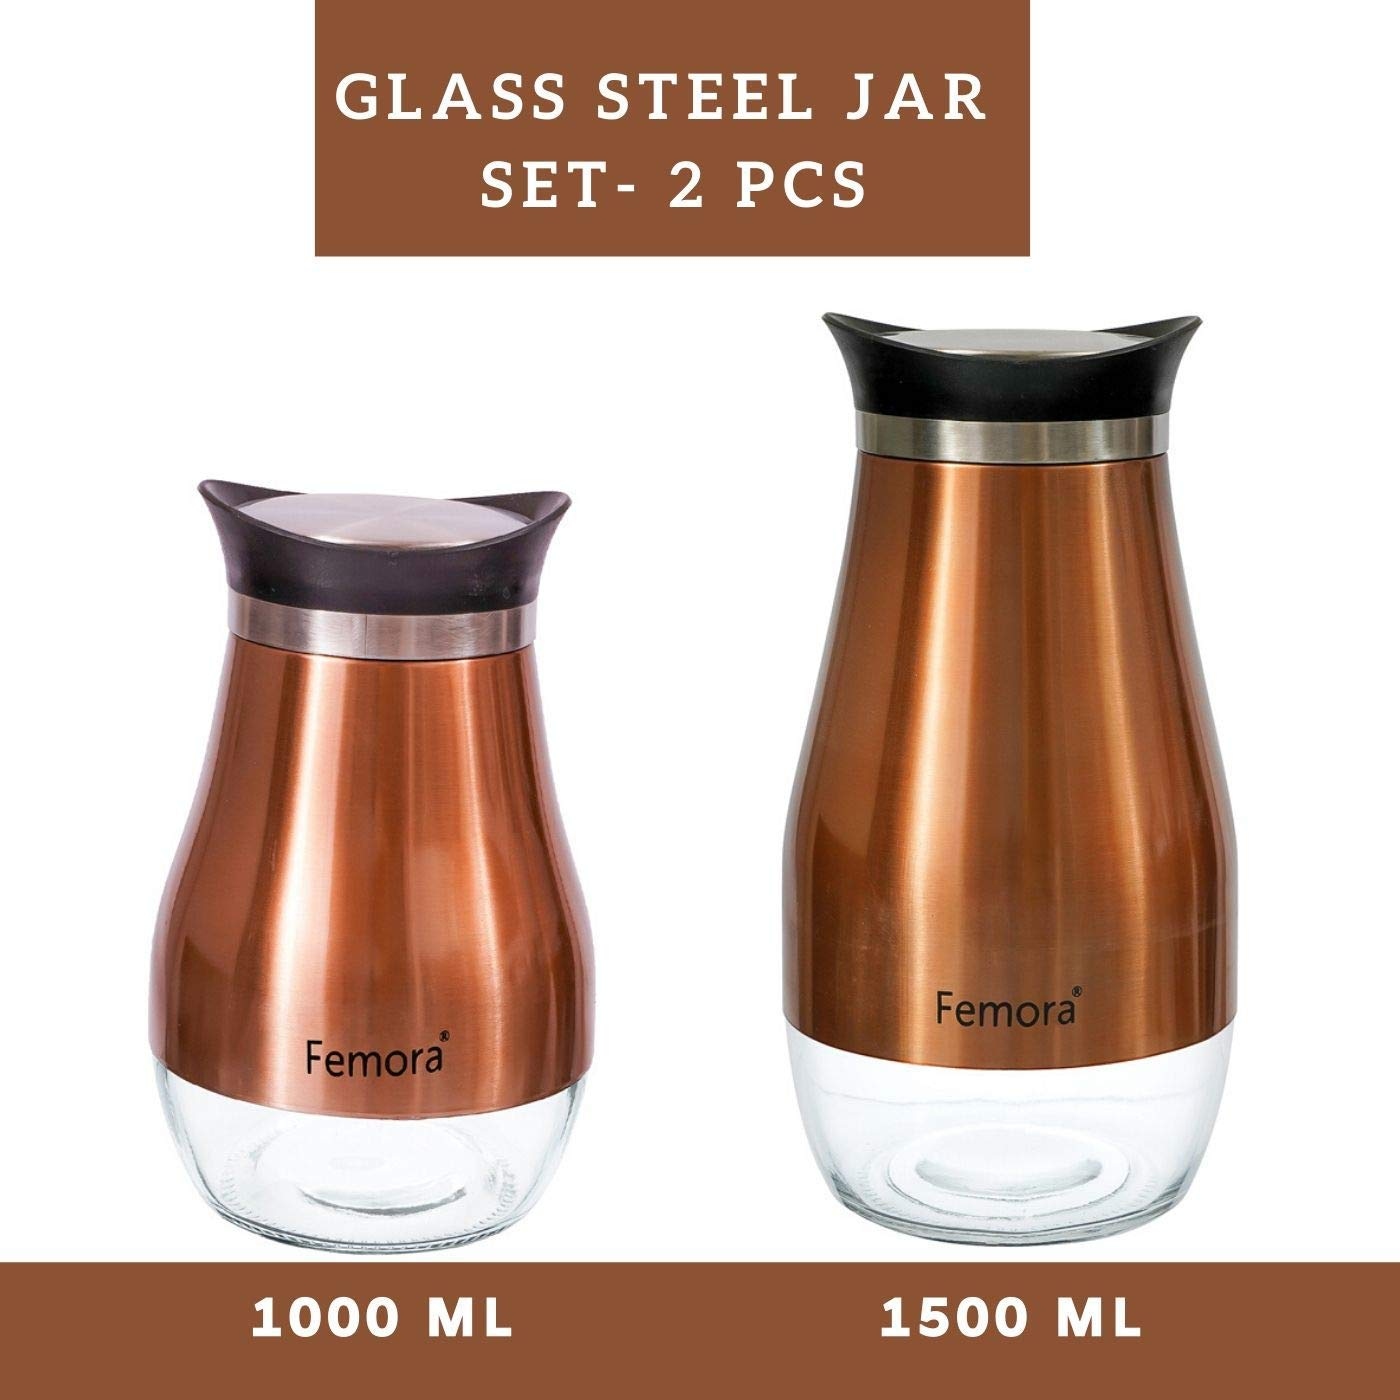 Clear Glass Steel Jar - 1000ML, 1500ML, Set of 2